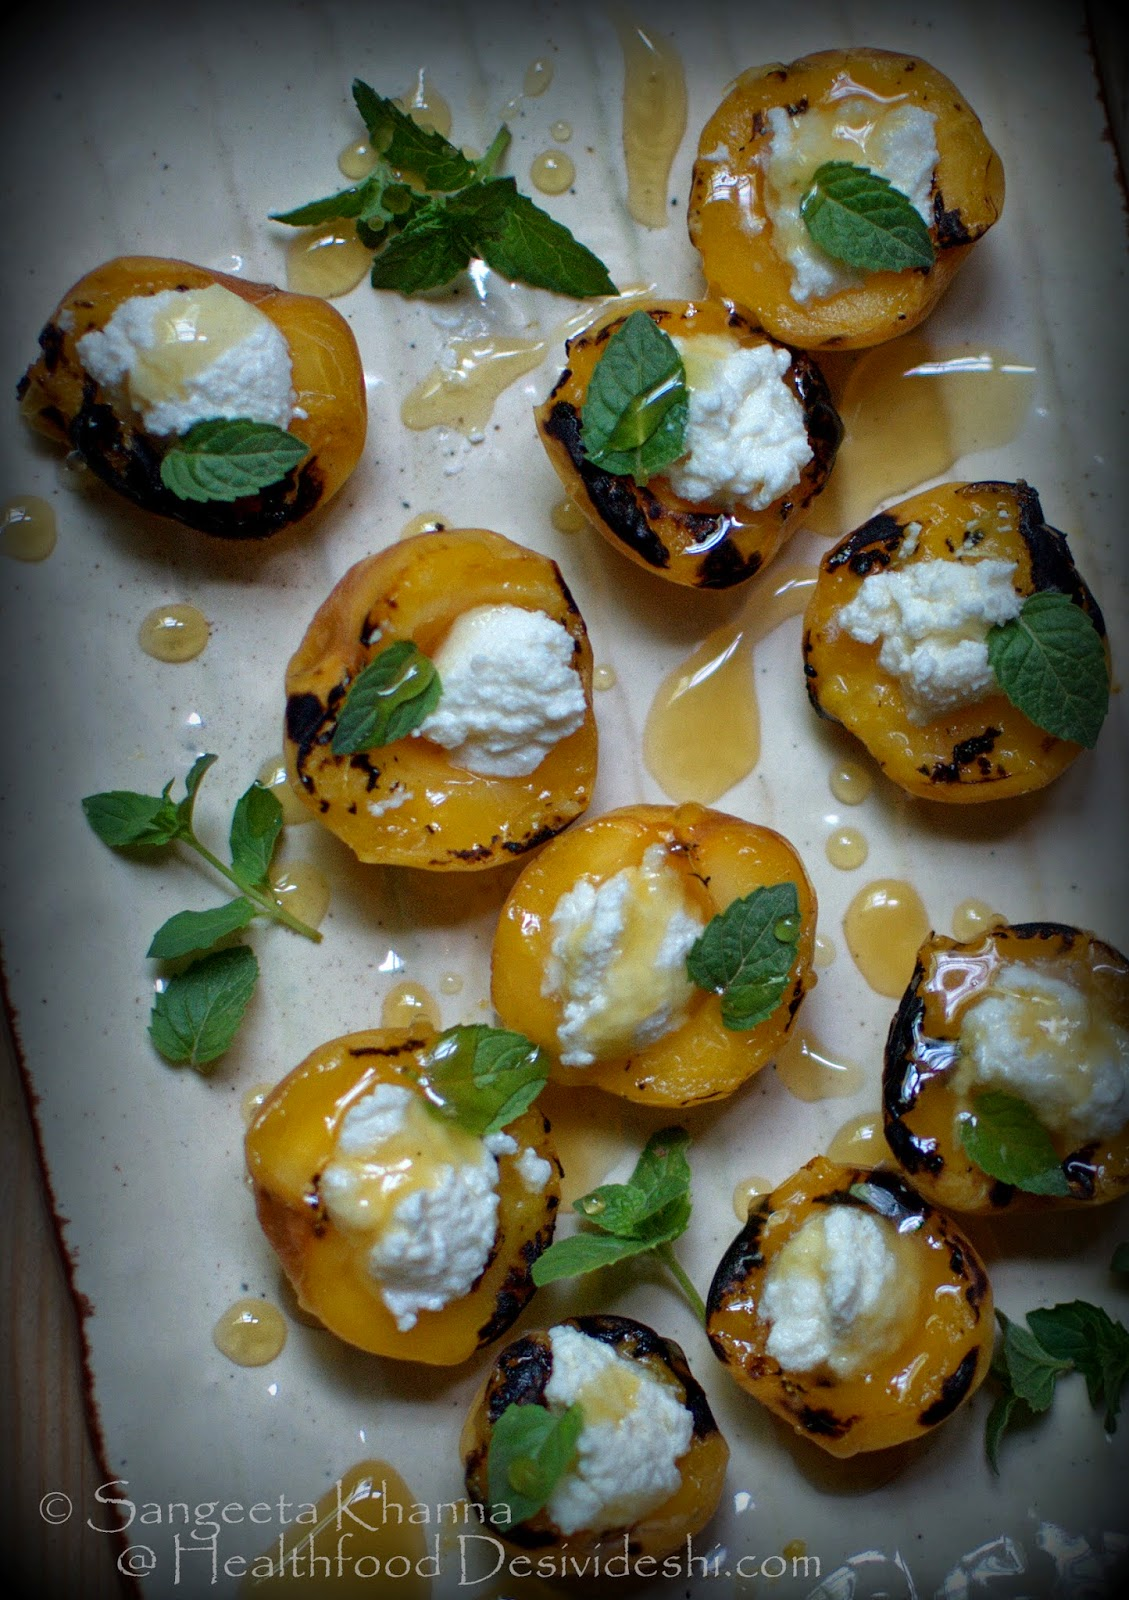 desserts without sugar: grilled apricot halves with sour cream and litchi honey   make it an appetiser or a dessert